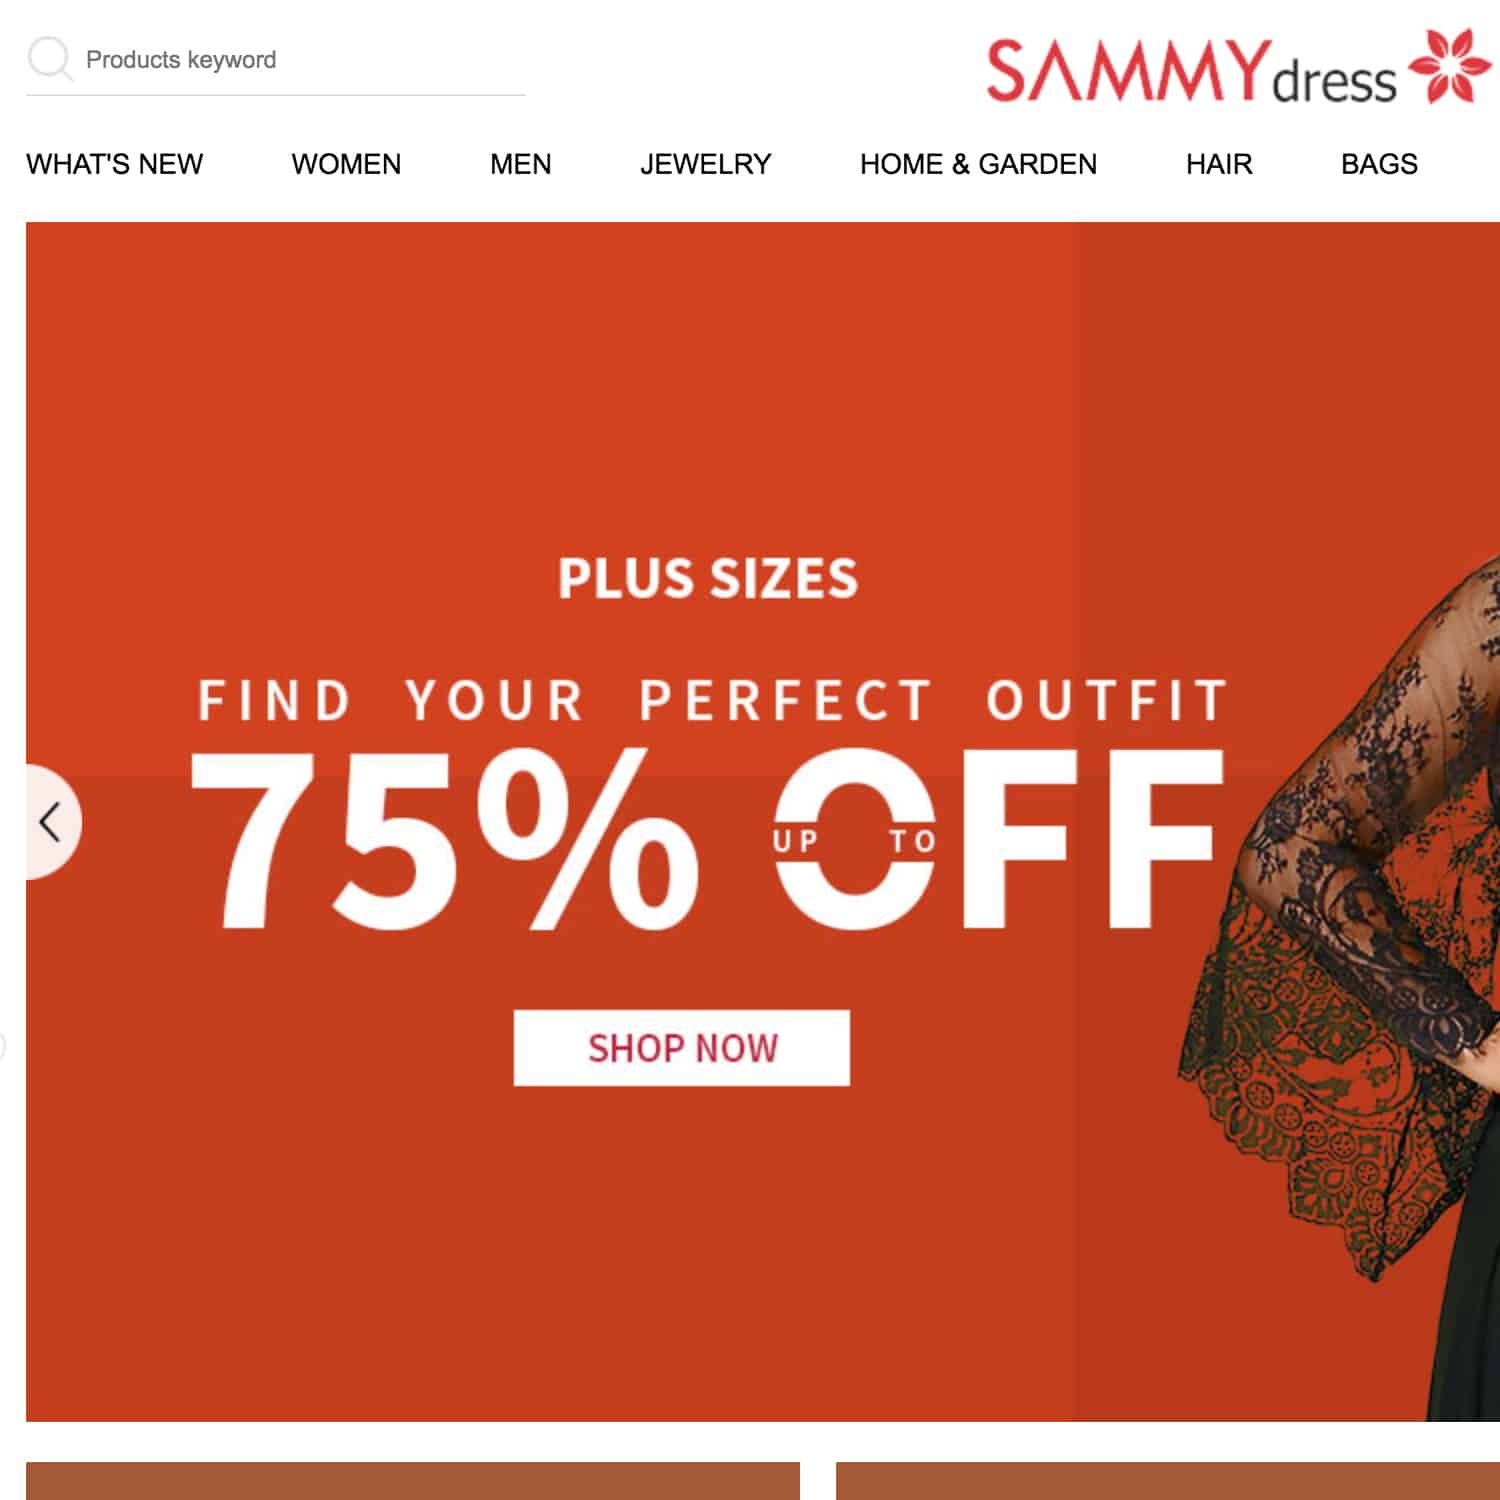 Sammydress - reviews. Is it legit and safe in 2019?